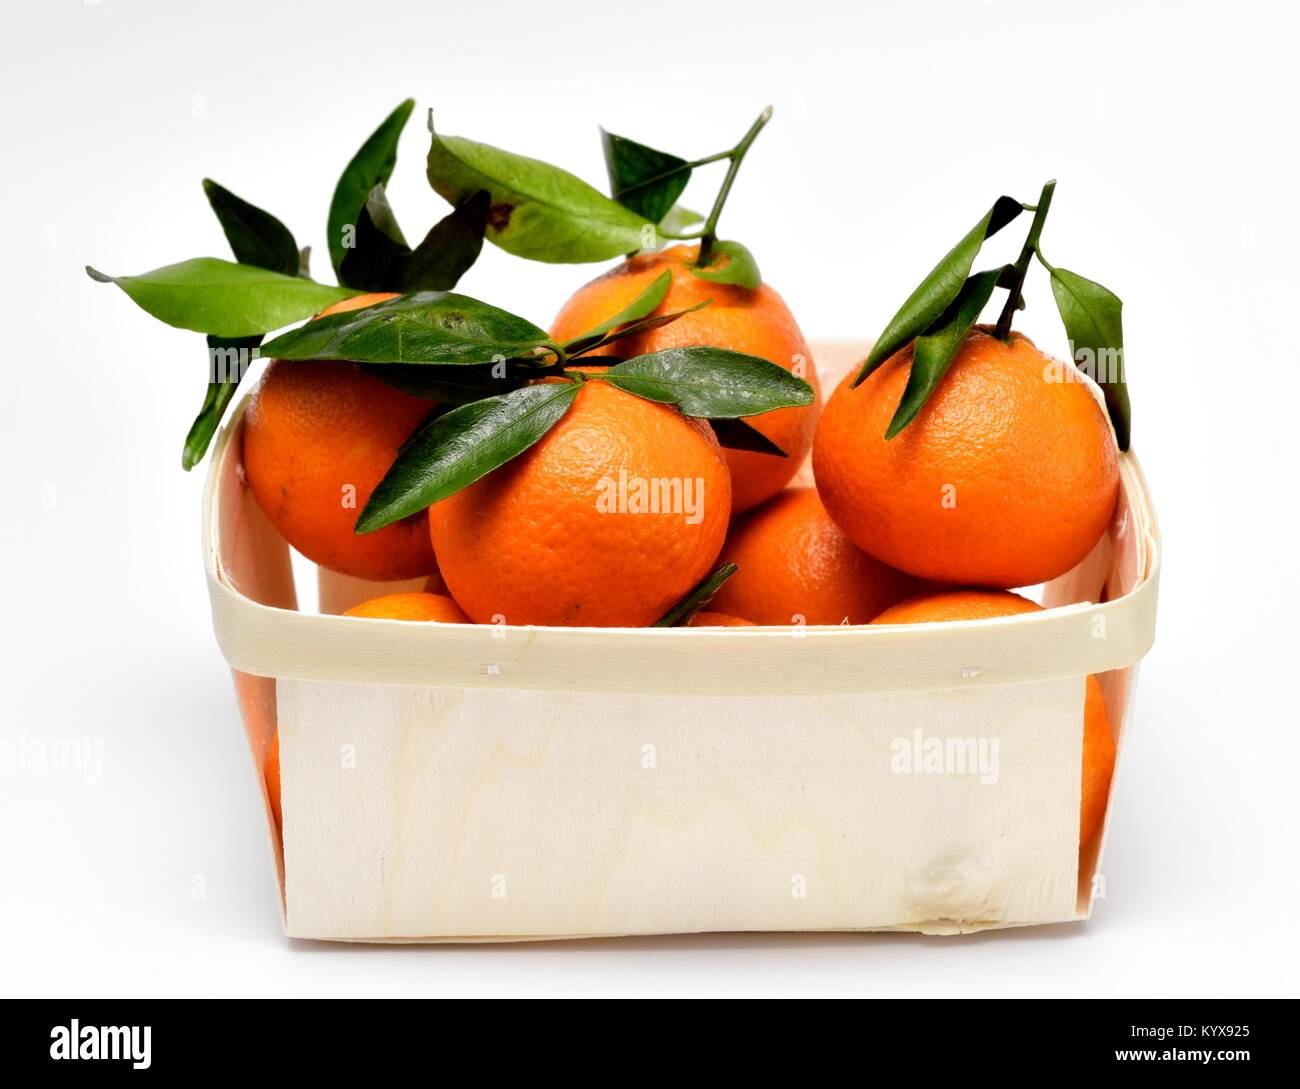 Oranges with green leaves sold in a small crate - Stock Image